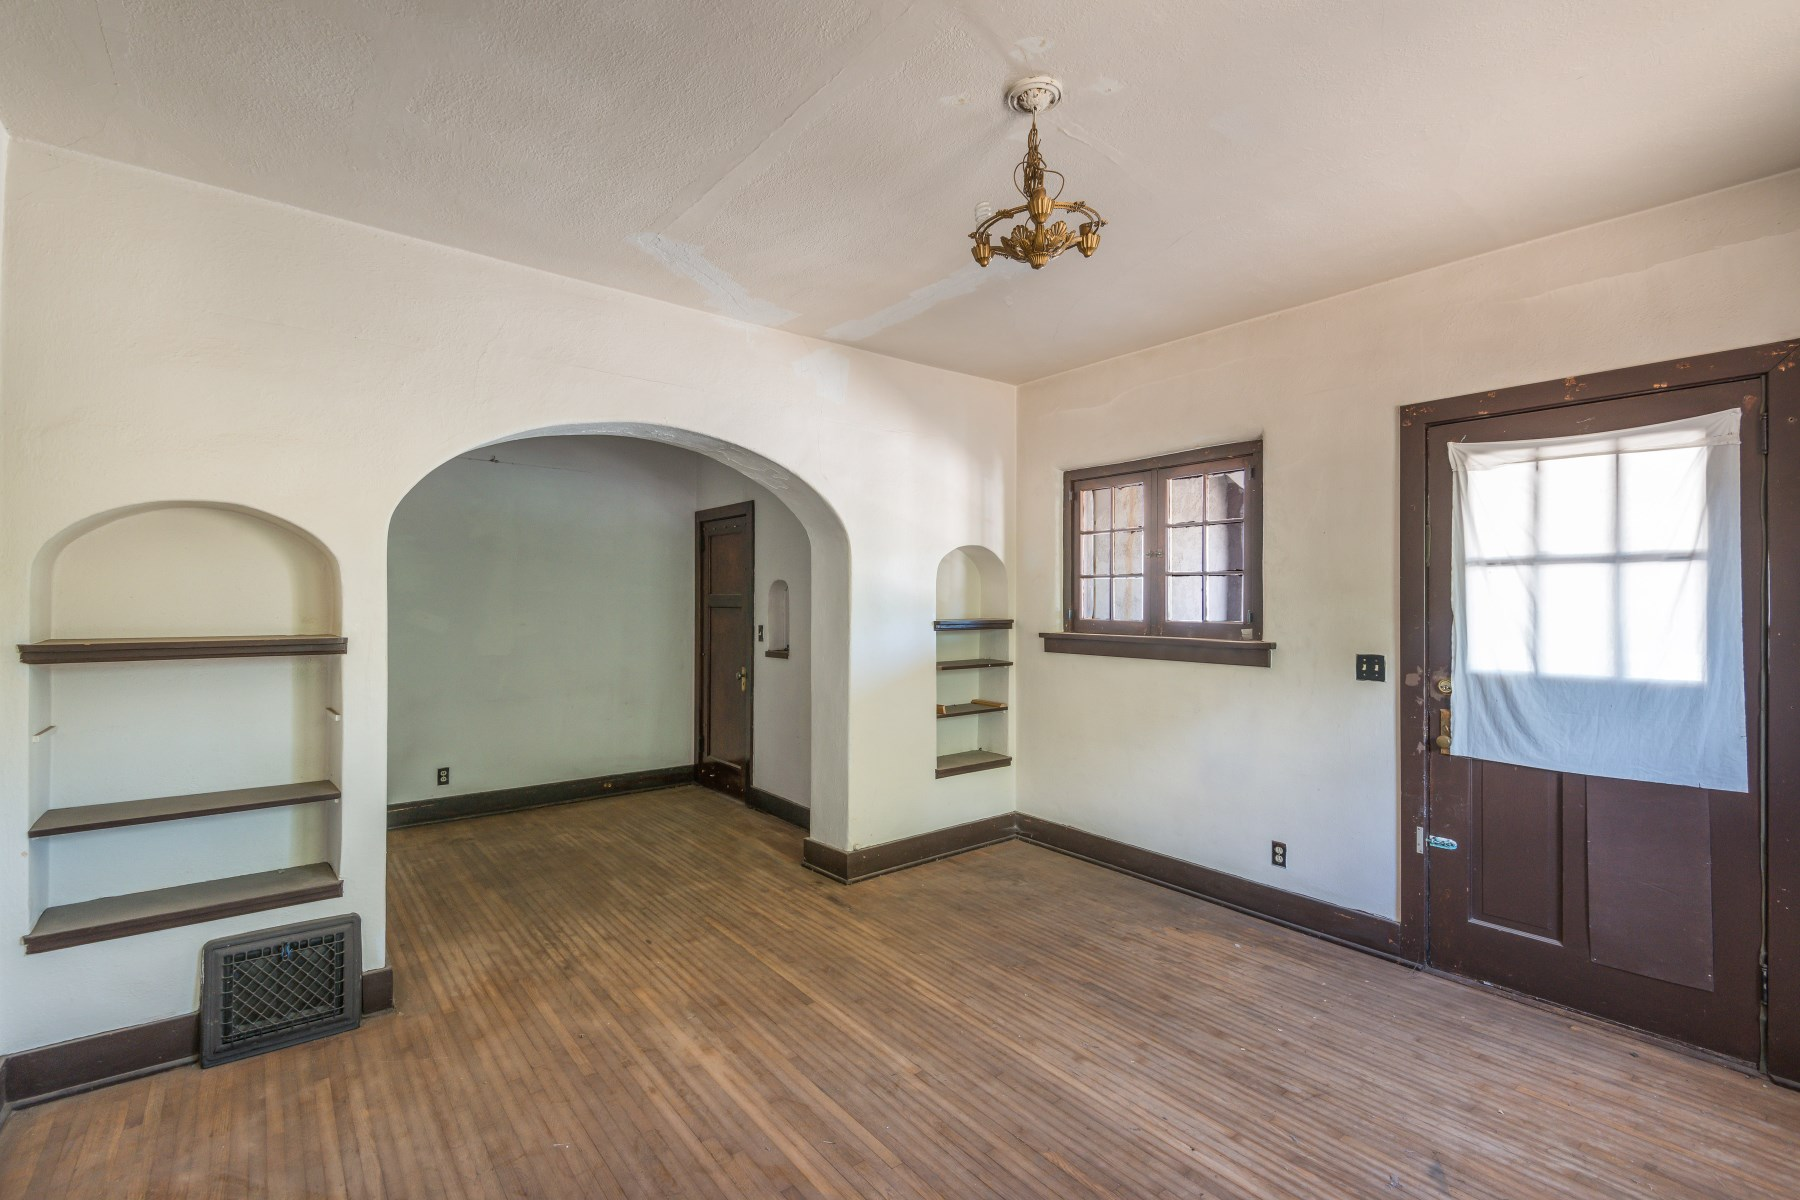 Single Family Home for Sale at 130 W. Berger Santa Fe City Southeast, Santa Fe, New Mexico, 87505 United States